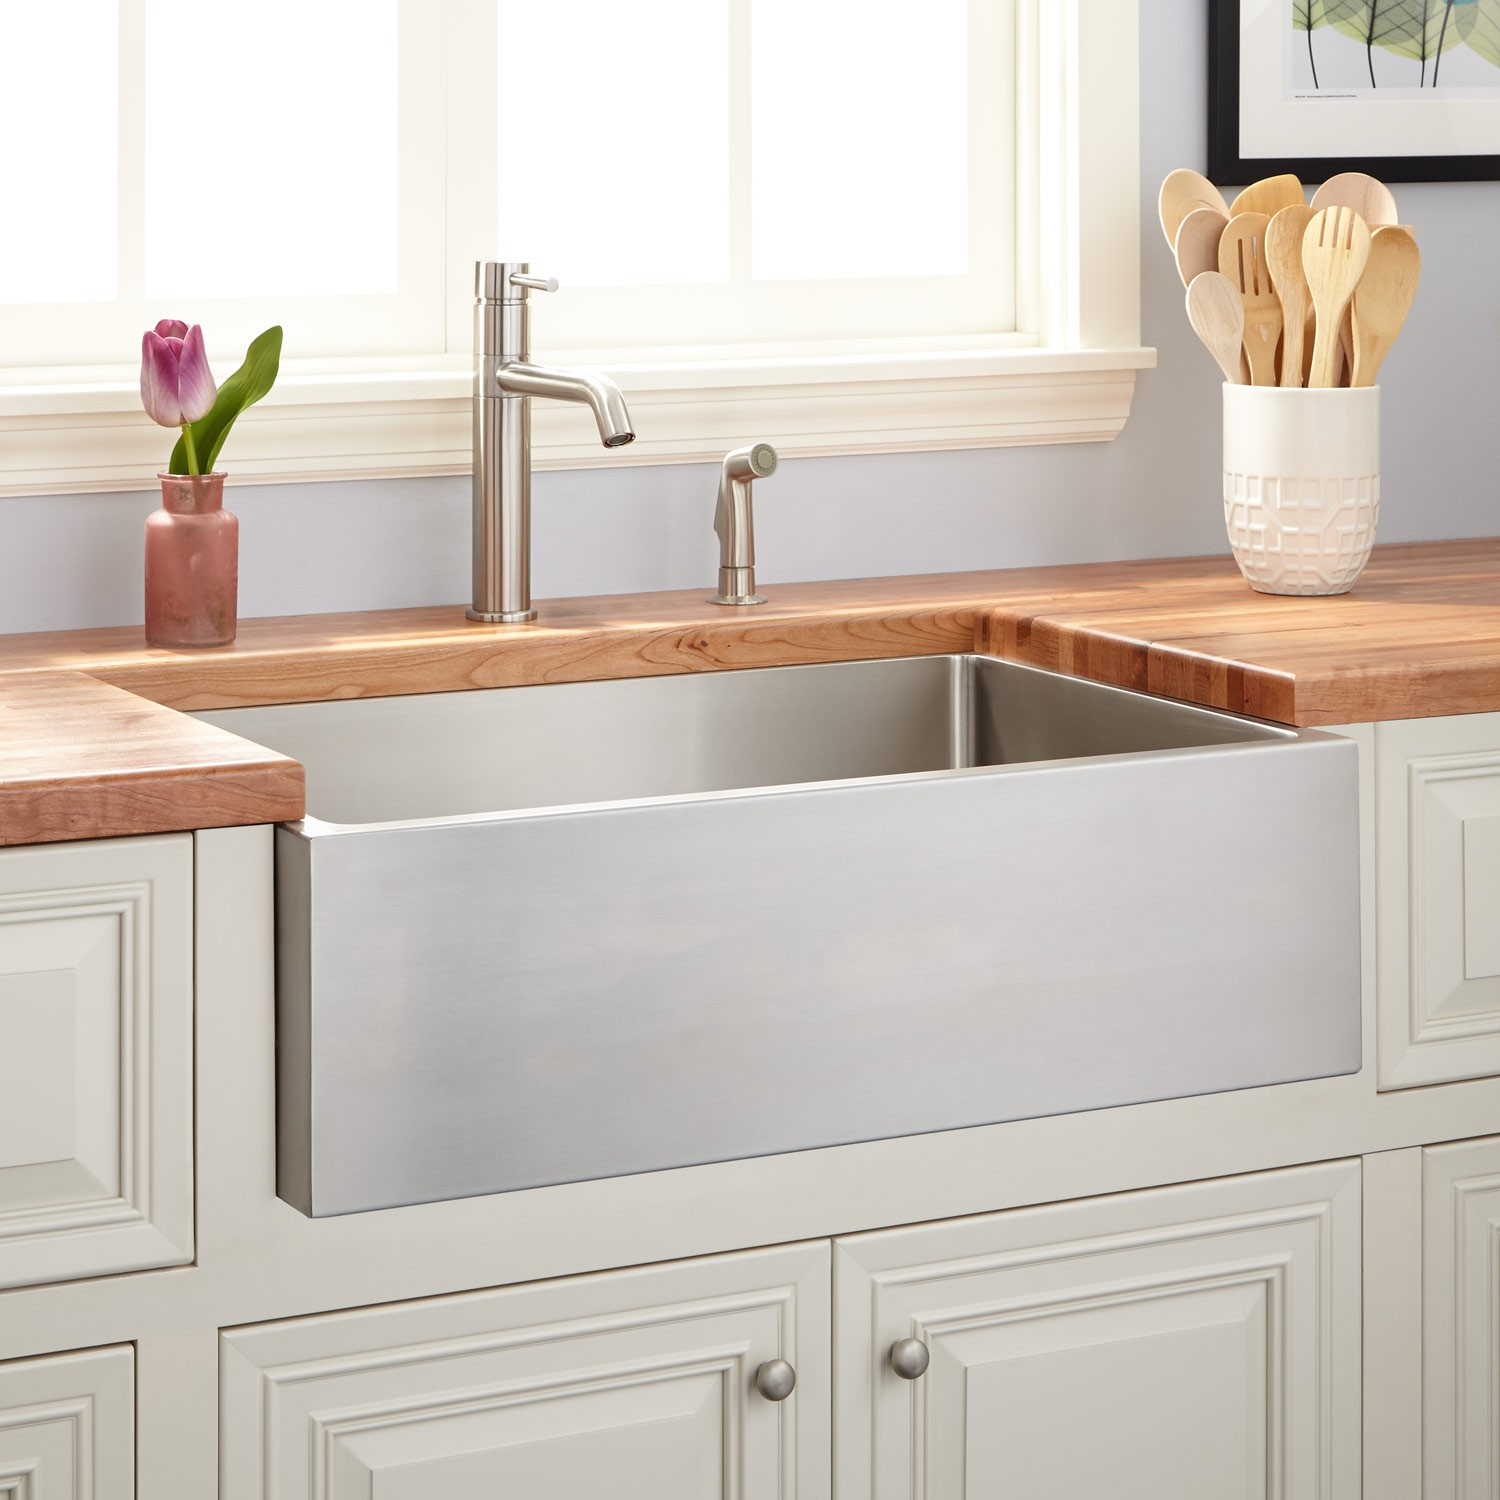 White Farmhouse Sinks For Sale Apron Front Farmhouse Sinks Our Best Budget Picks Apartment